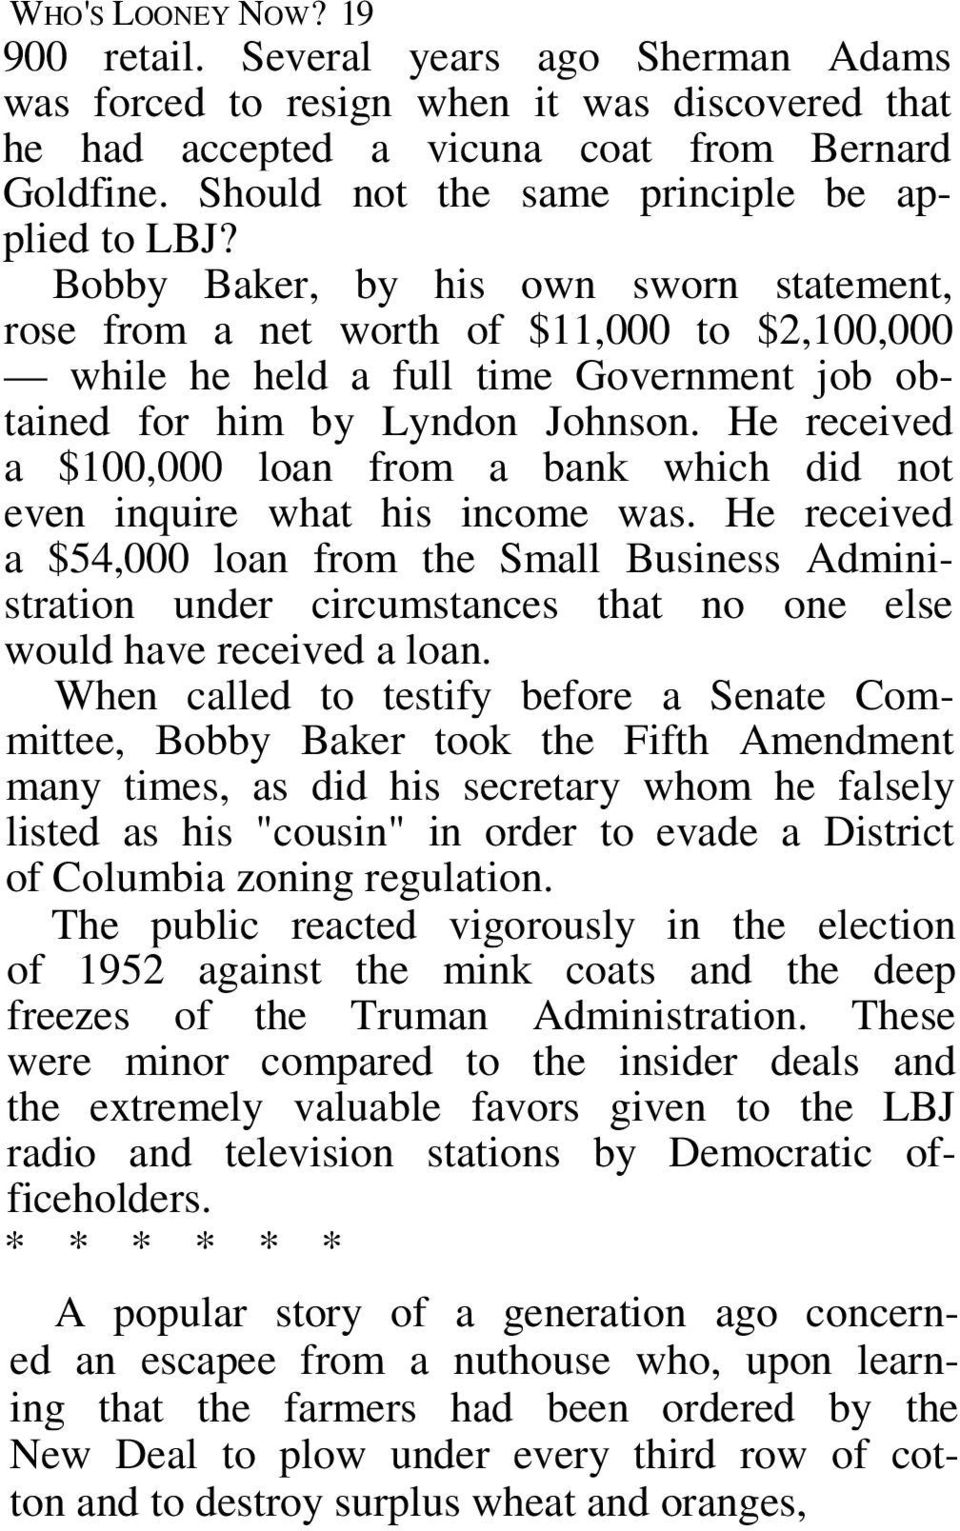 Bobby Baker, by his own sworn statement, rose from a net worth of $11,000 to $2,100,000 while he held a full time Government job obtained for him by Lyndon Johnson.